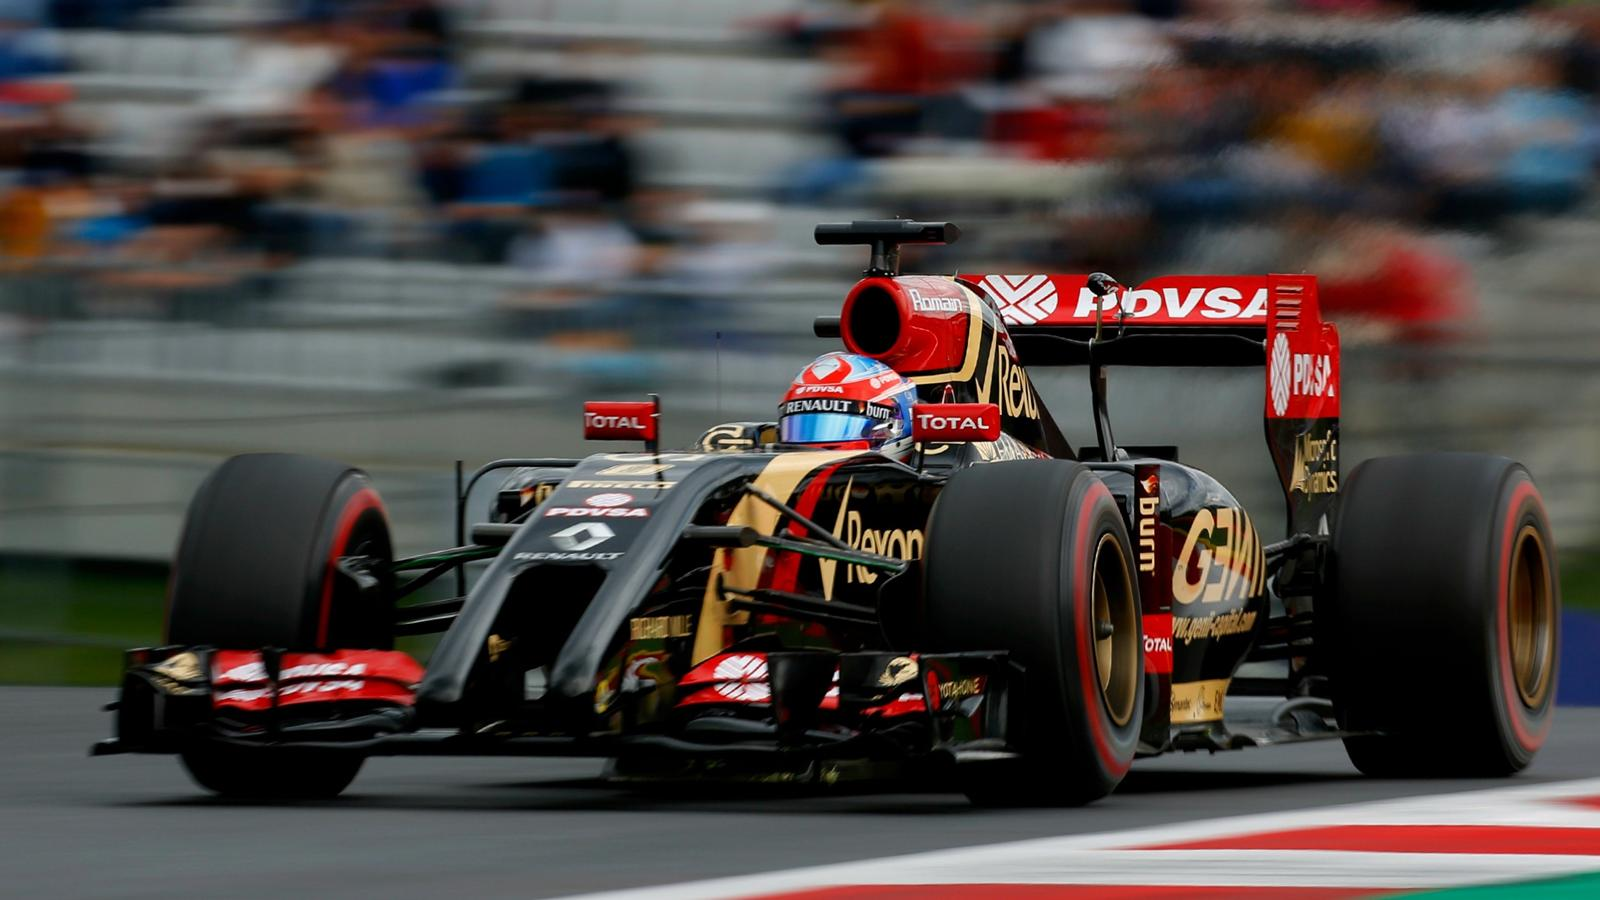 Romain Grosjean (Lotus) au Grand Prix d'Autriche 2014